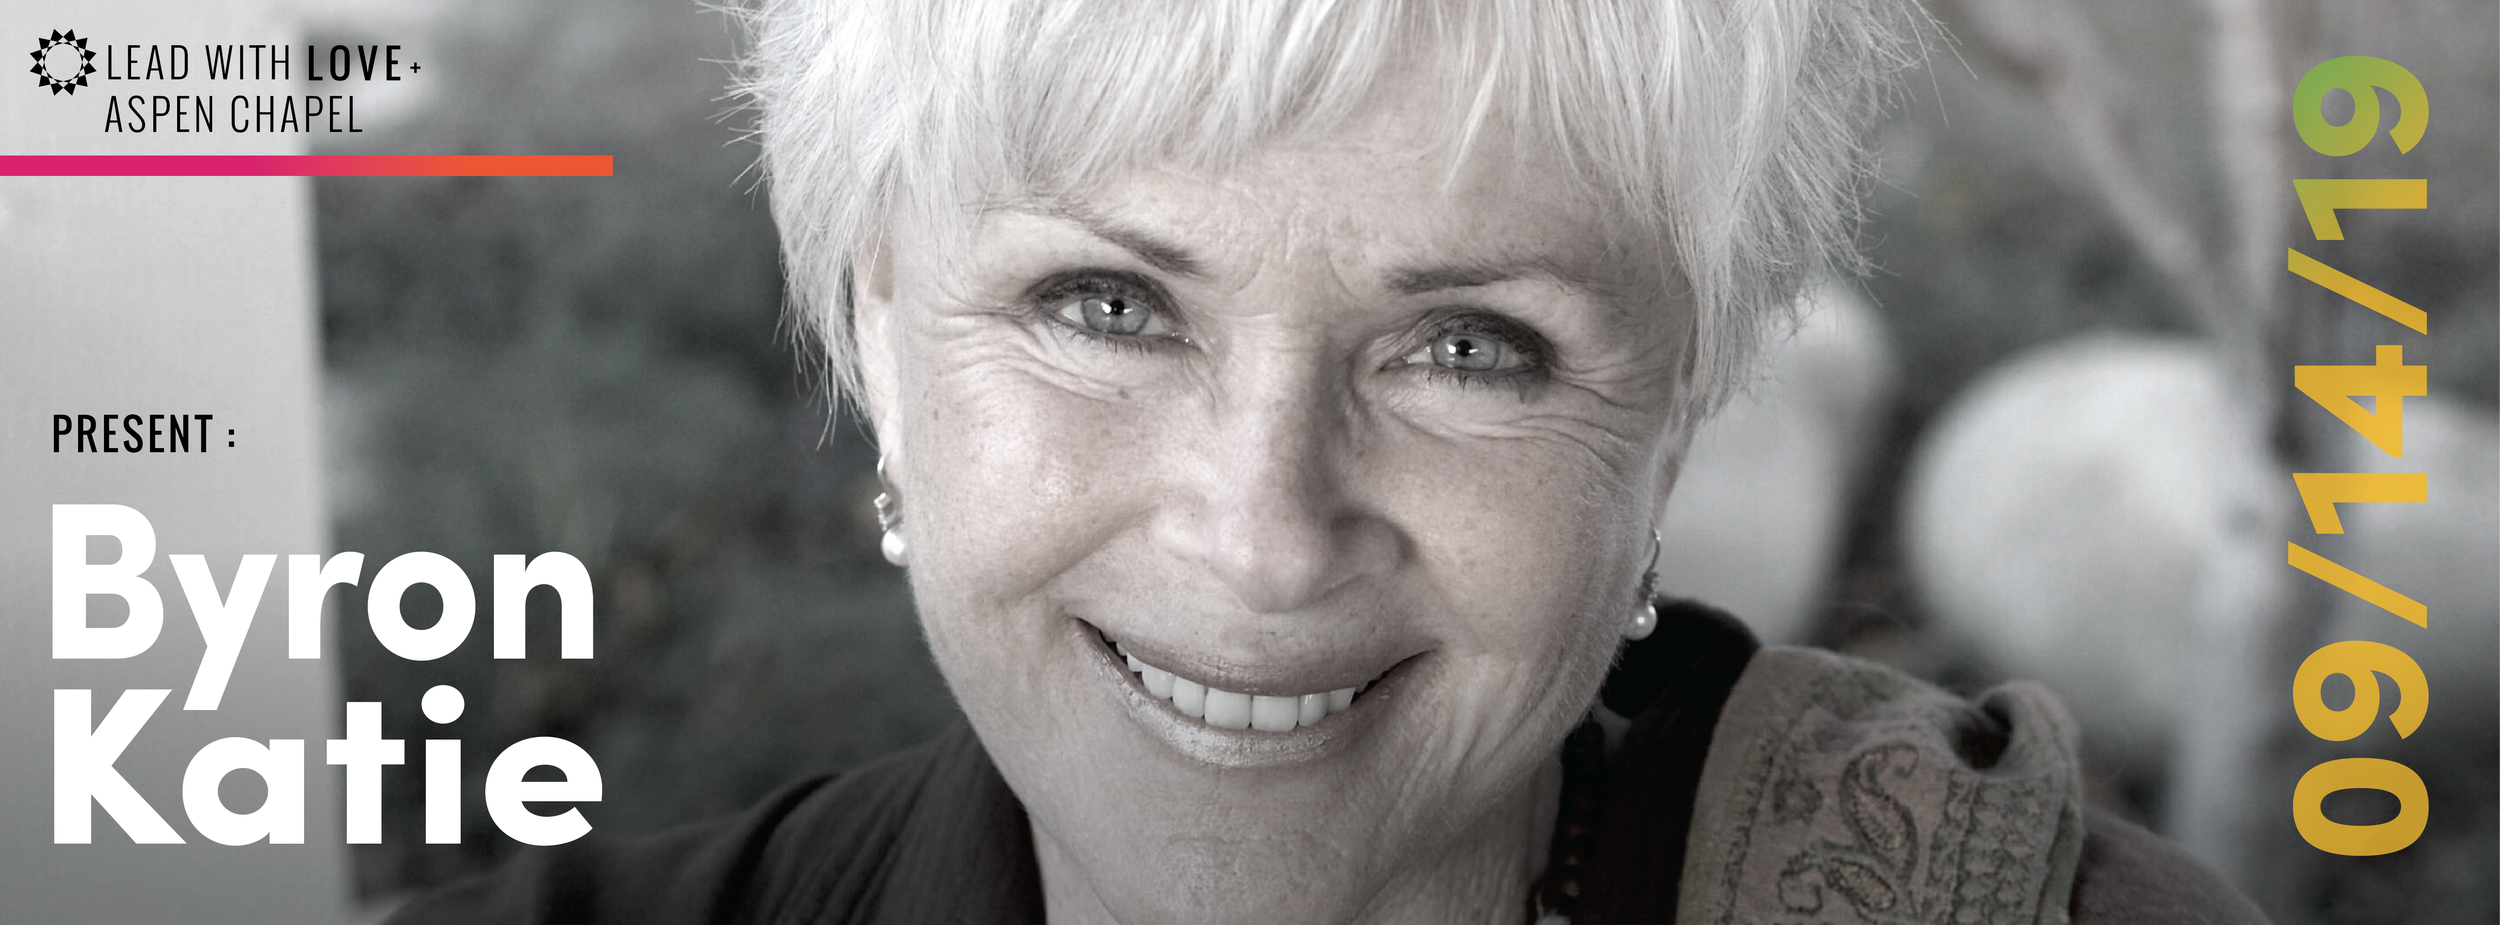 "Best-Selling Author and Speaker Byron Katie is the founder of The Work and will be joining us in Aspen Sept 14th and 15th as part of our  ""Aspen Retreat"" . We are so BLESSED to have her!"